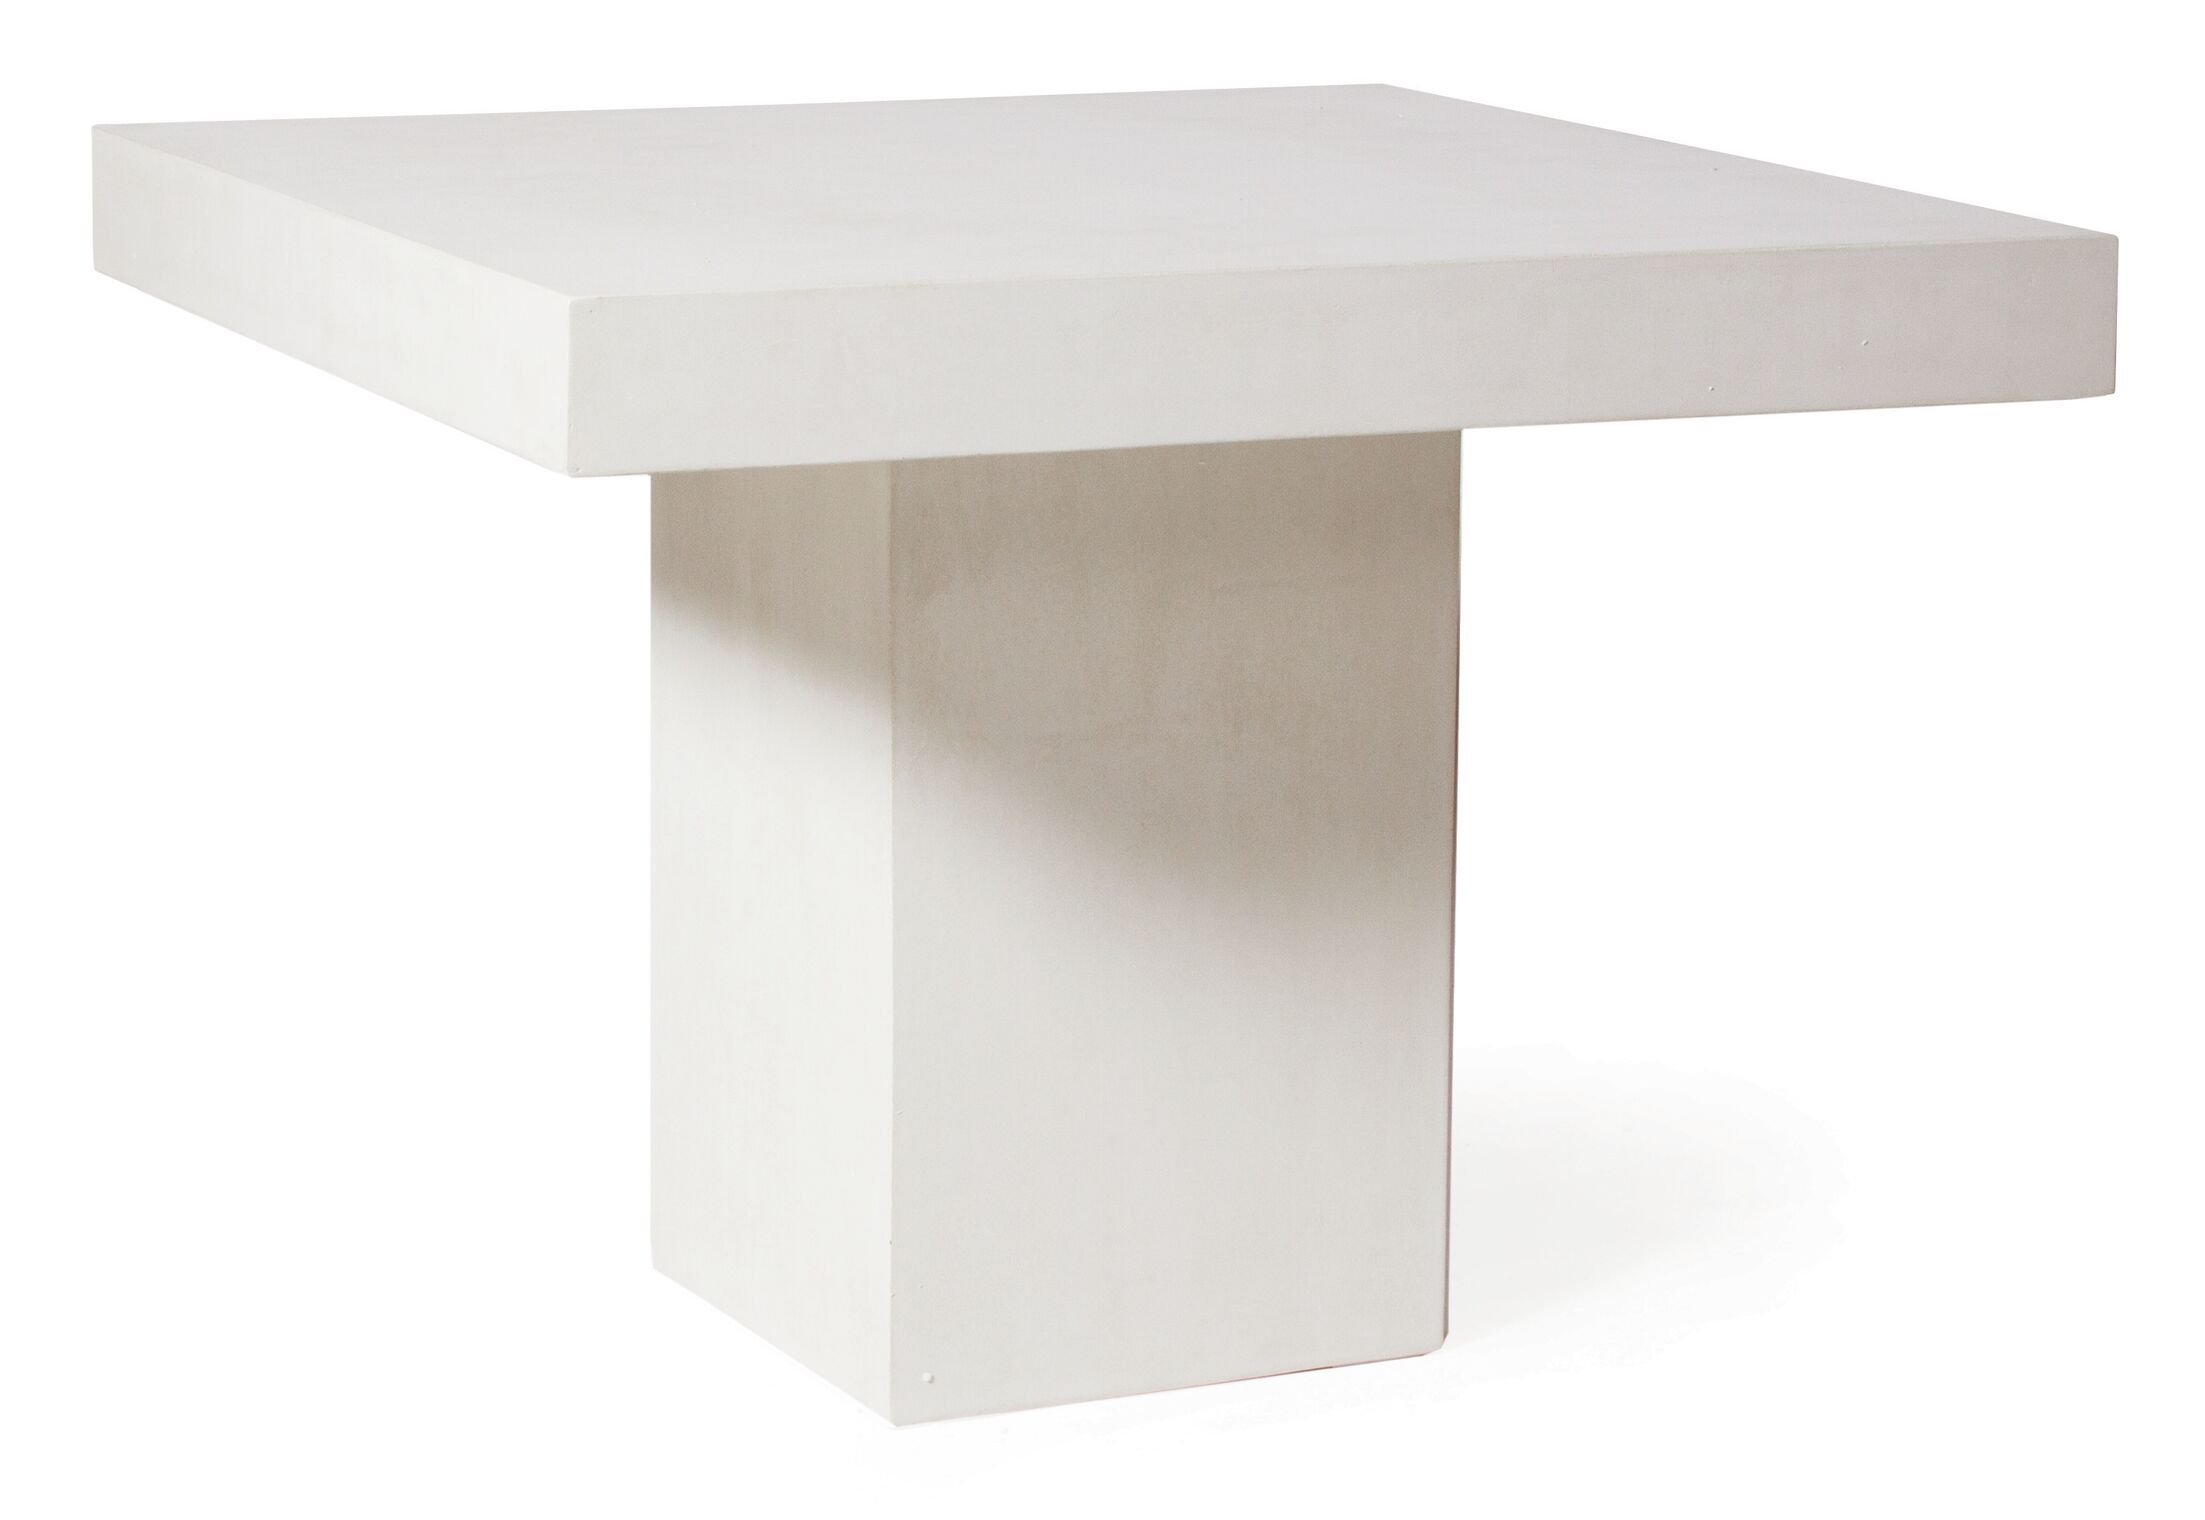 Perpetual Provence Concrete Dining Table Finish: Ivory White